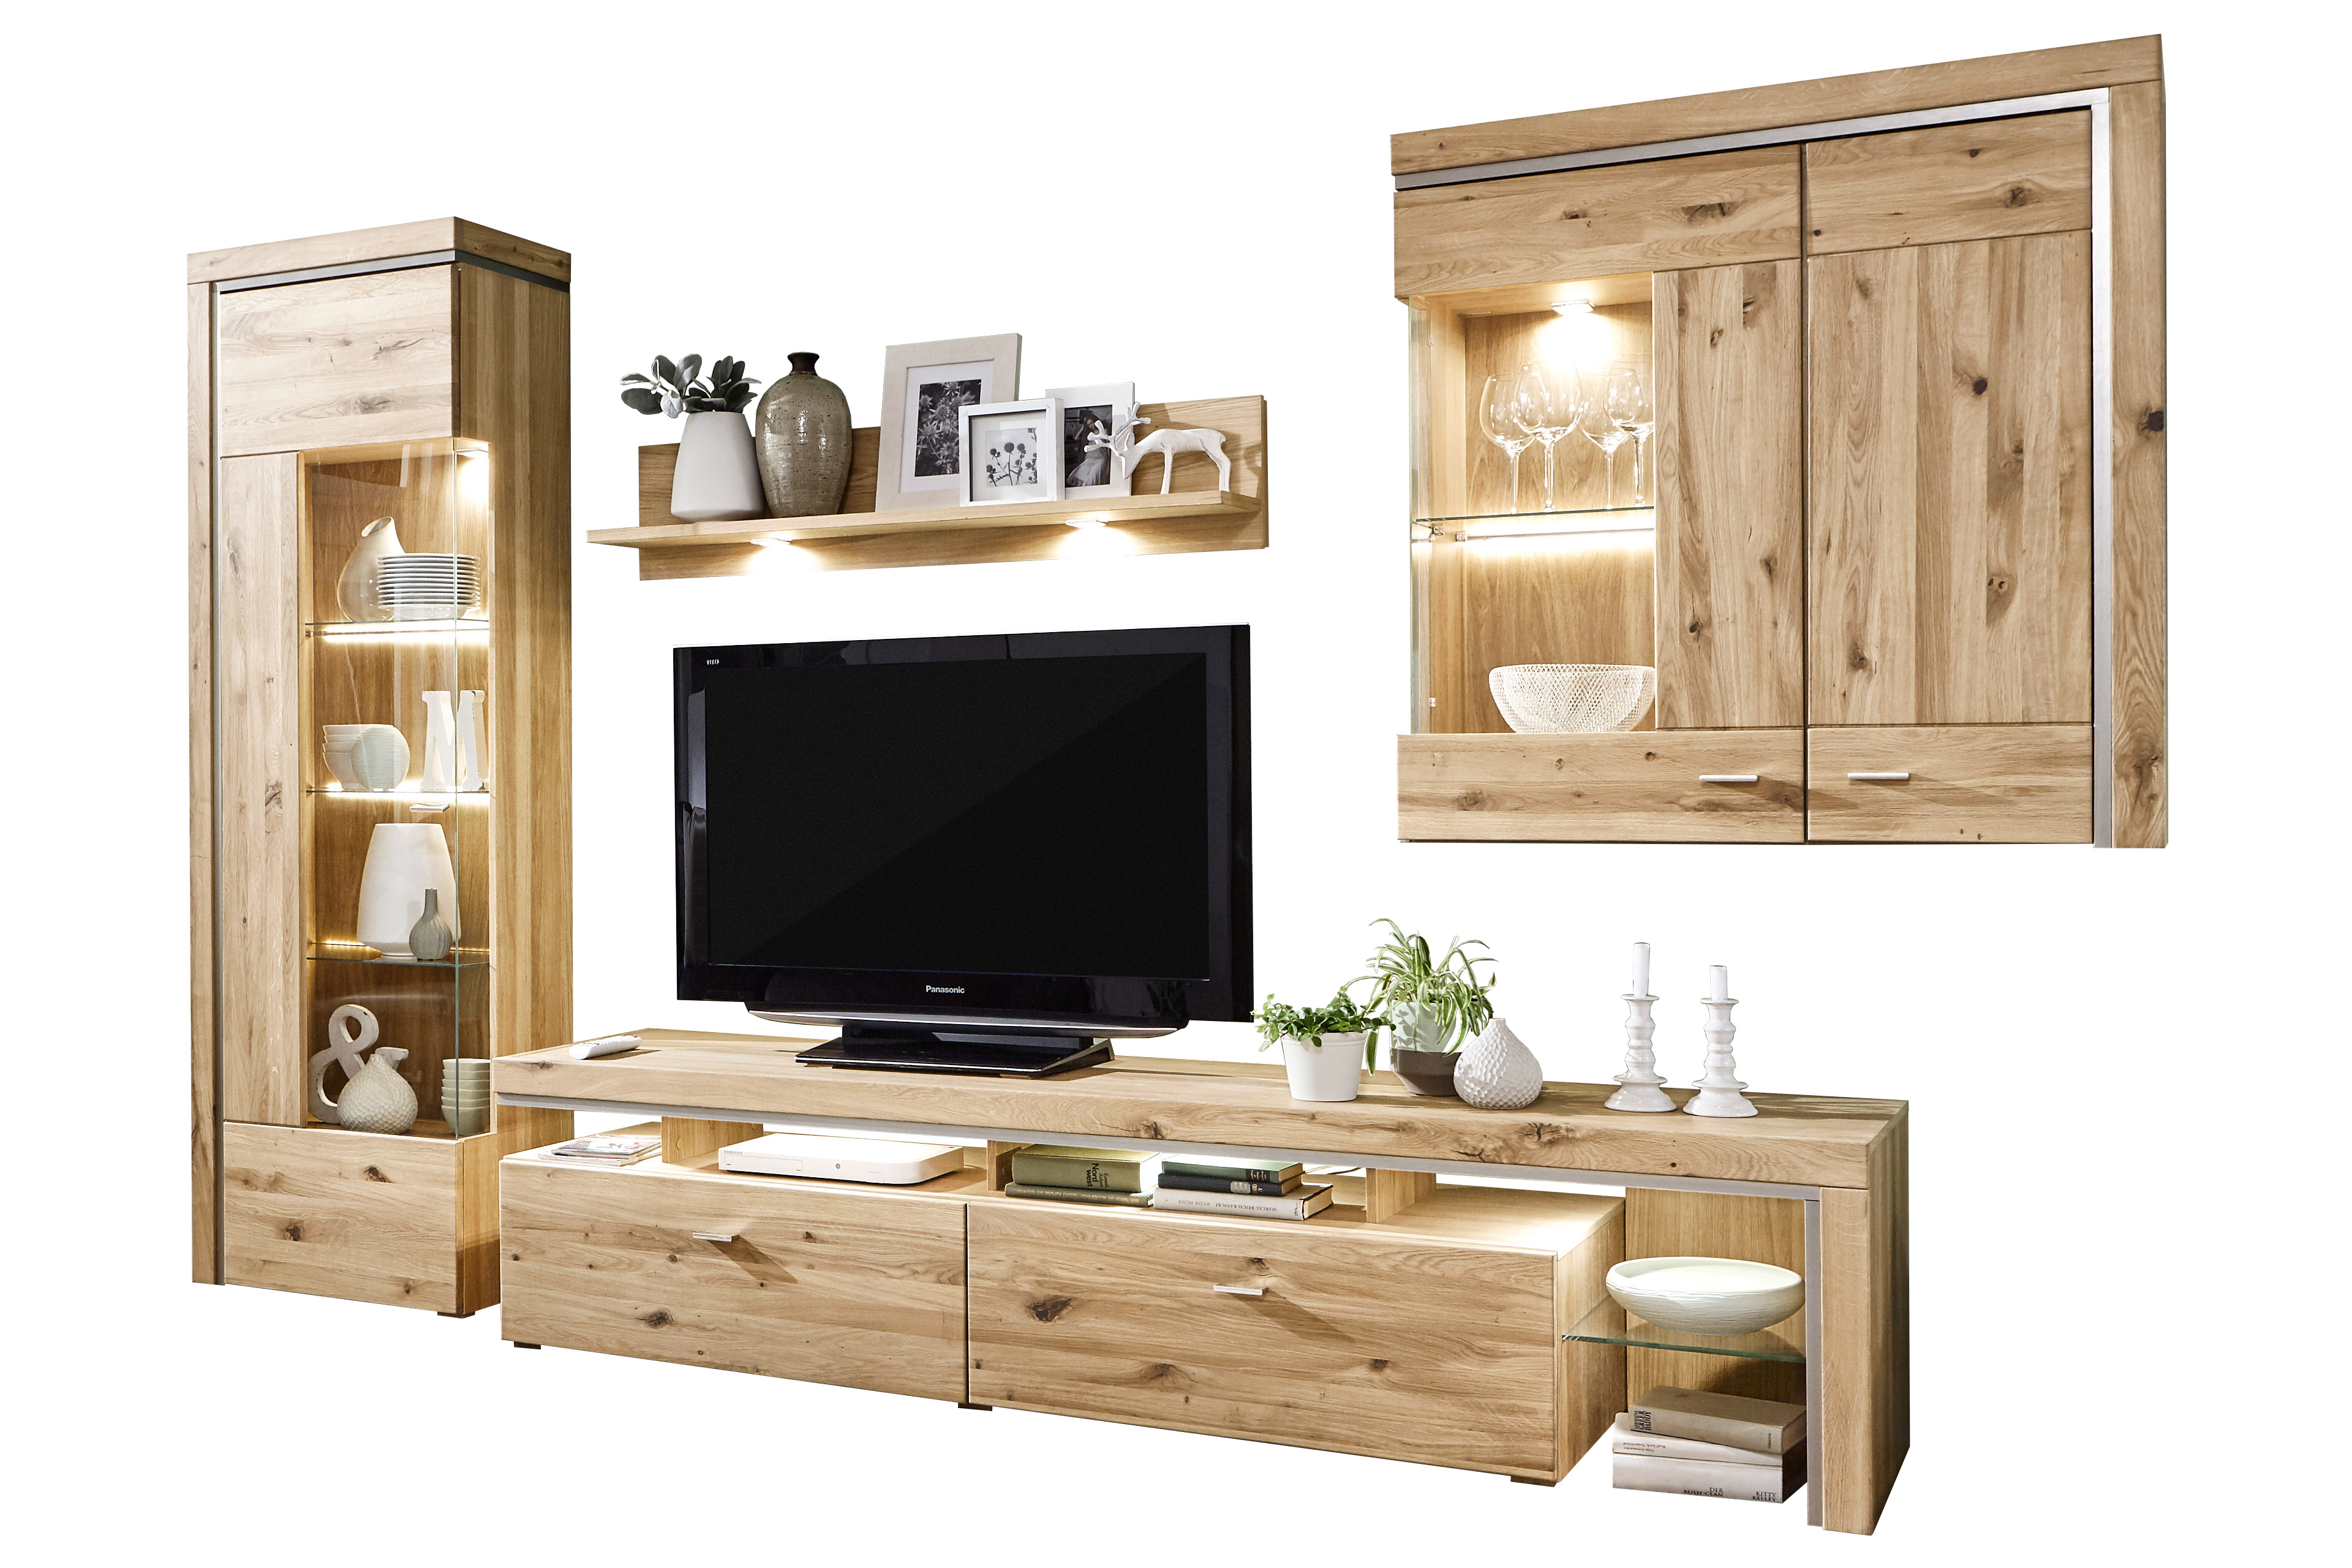 ideal m bel wohnwand bruni alteiche m bel letz ihr online shop. Black Bedroom Furniture Sets. Home Design Ideas